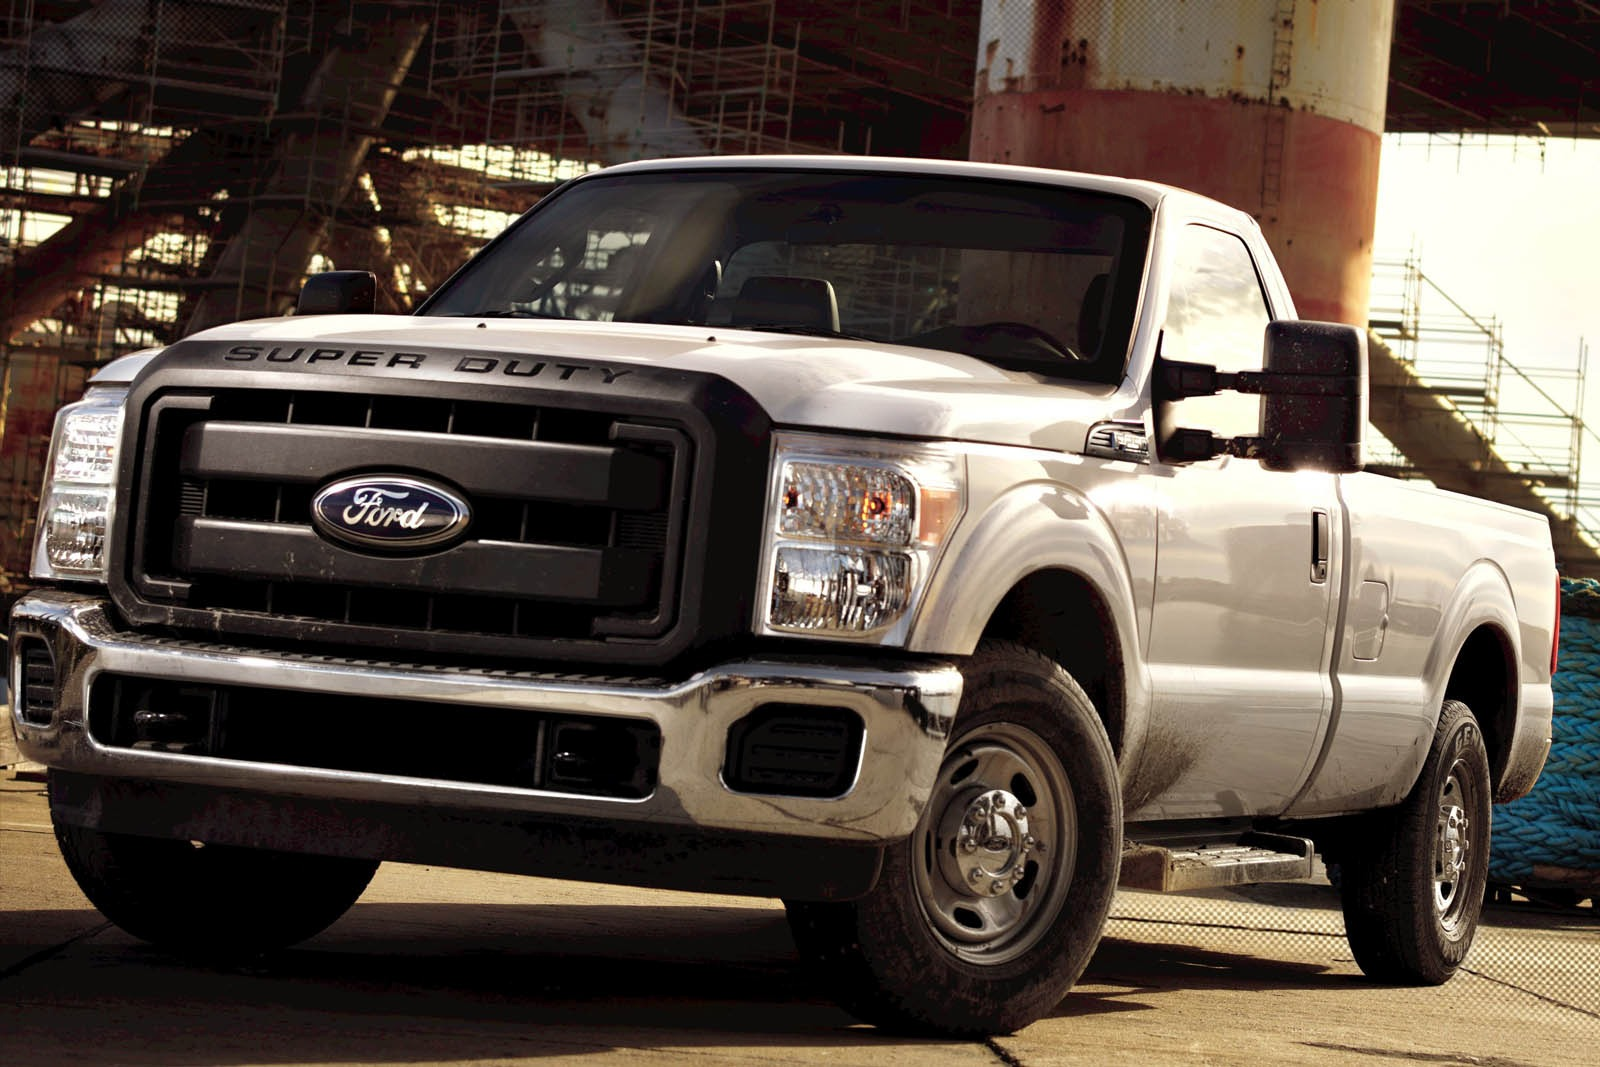 2012 Ford F-250 Super Dut exterior #5